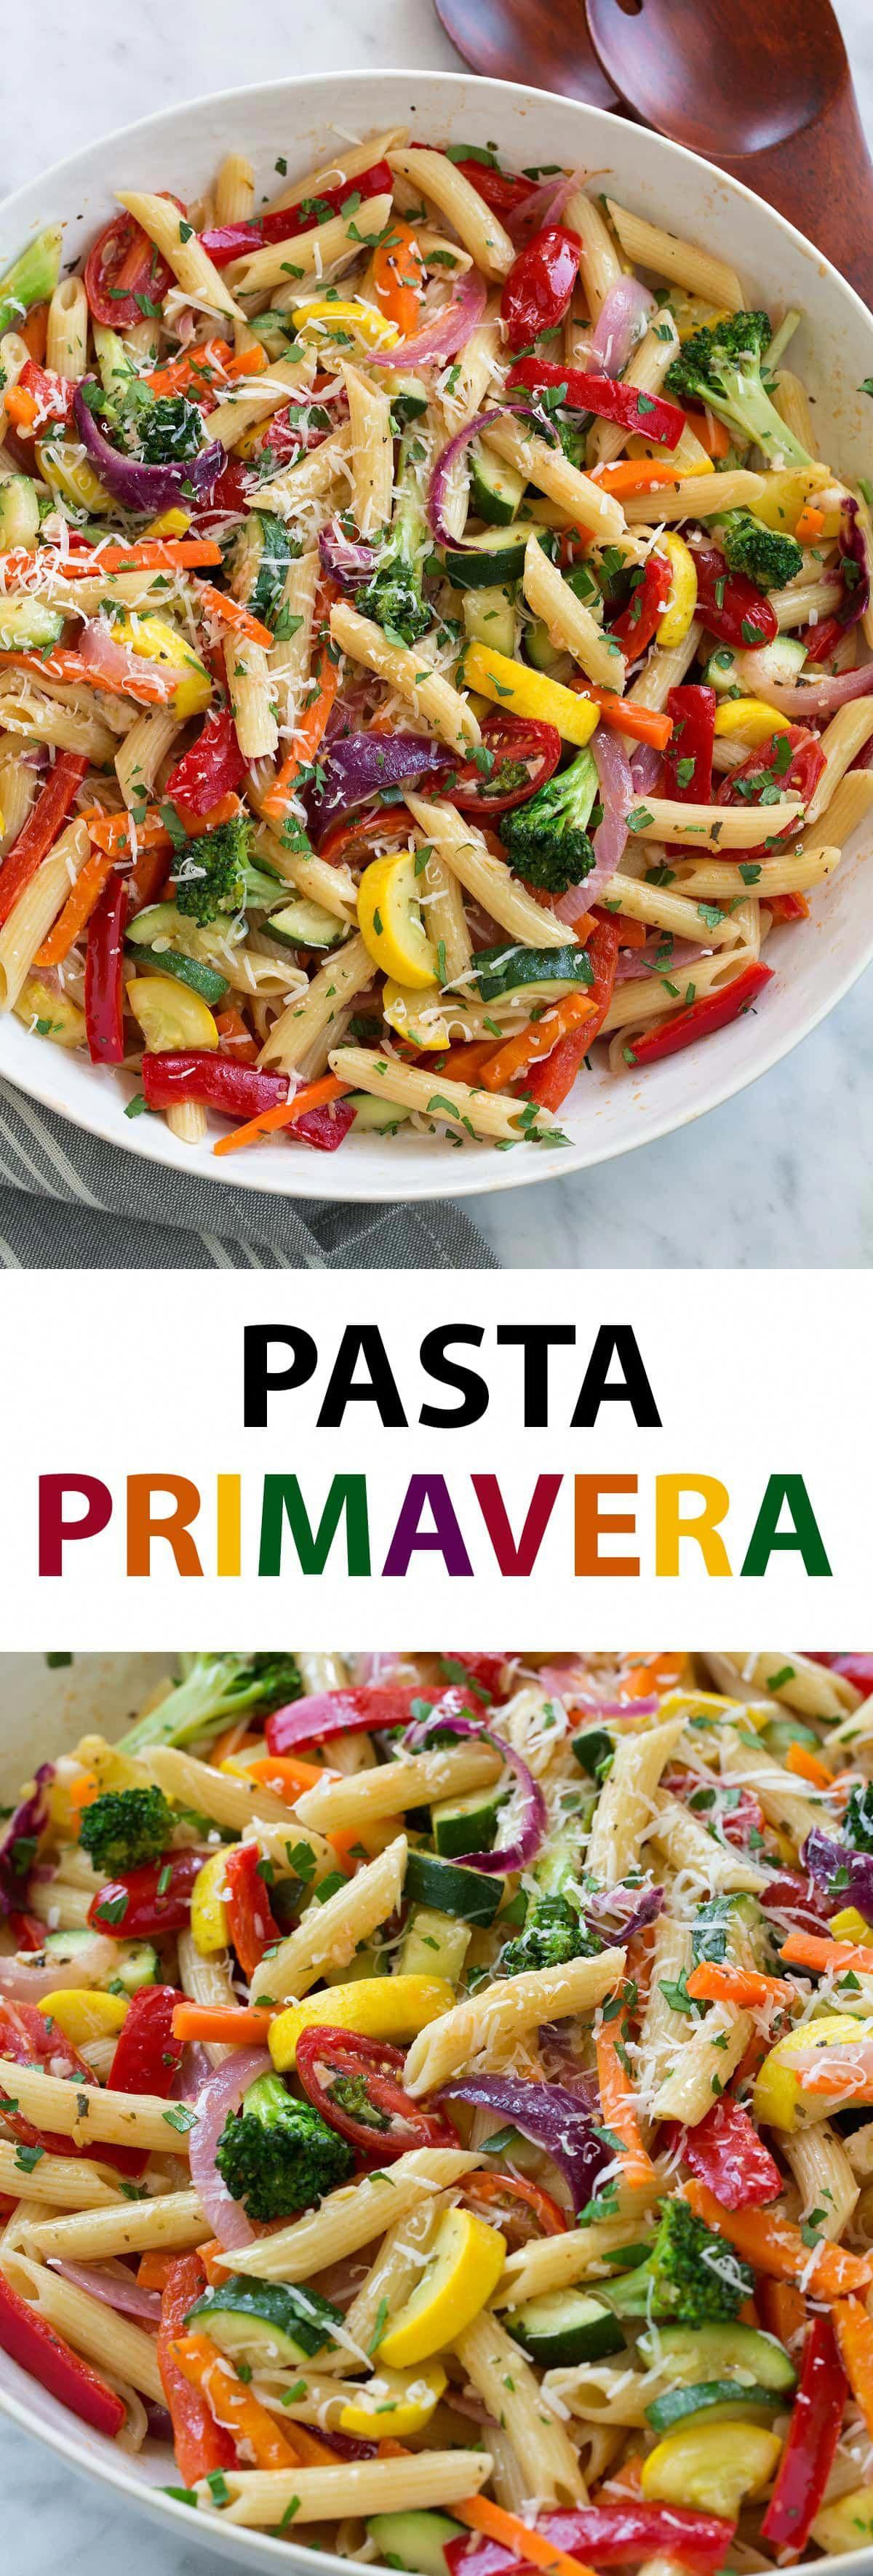 Pasta Primavera - this is a hearty, veggie packed pasta dish that's perfect for serving year round! It has so much fresh flavor, it's a great way to use up those veggies in the fridge. via @cookingclassy